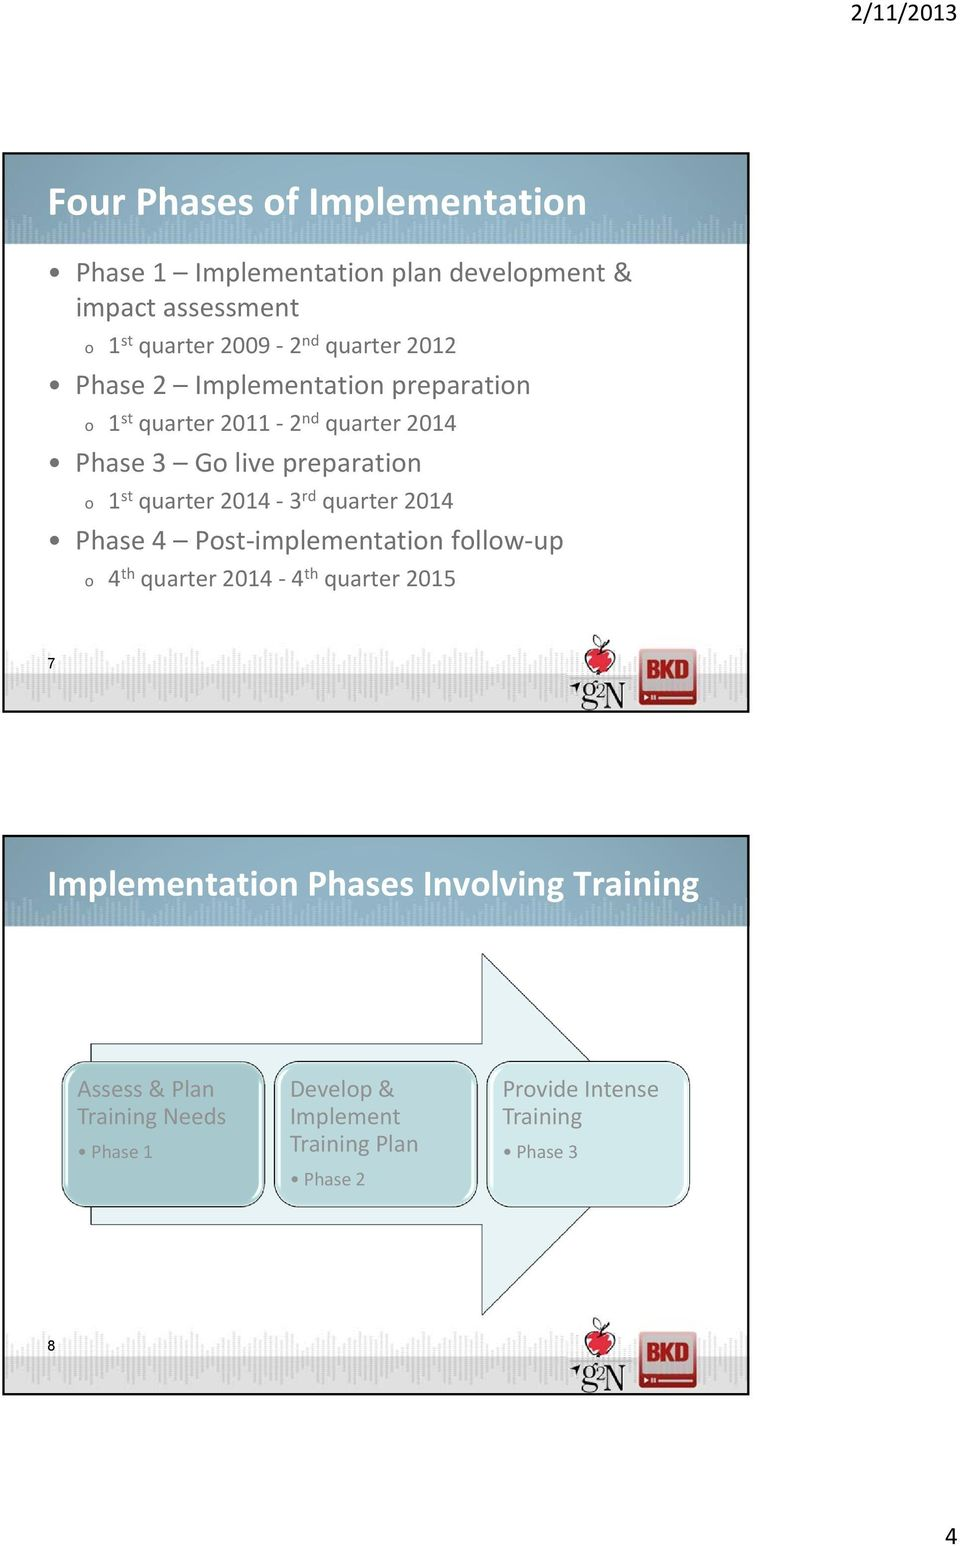 2014-3 rd quarter 2014 Phase 4 Post-implementation follow-up o 4 th quarter 2014-4 th quarter 2015 7 Implementation Phases